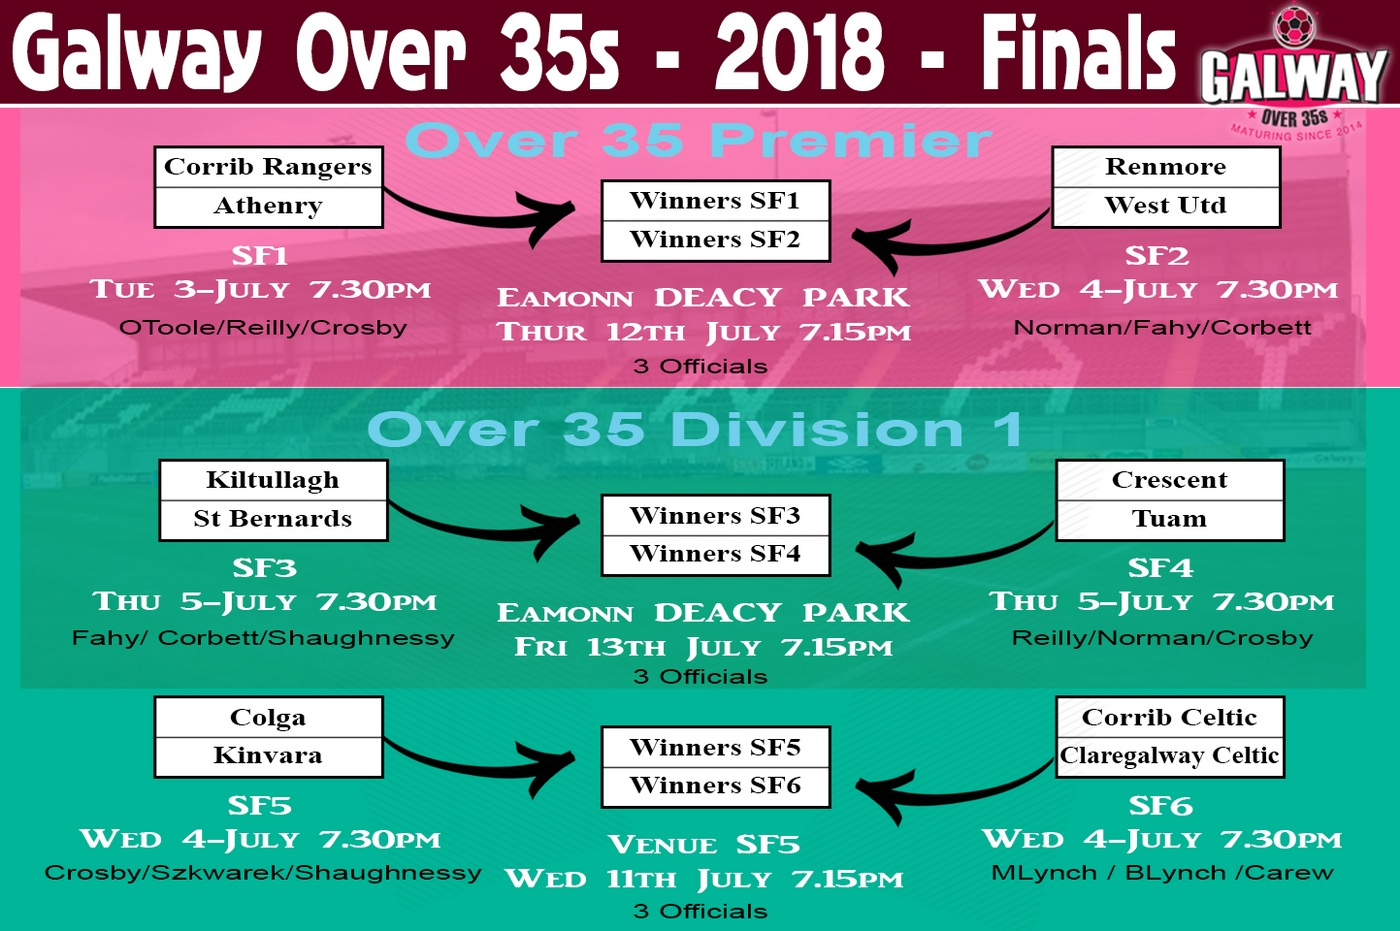 Galway Masters 2018 lineup for semifinals and dates for Finals